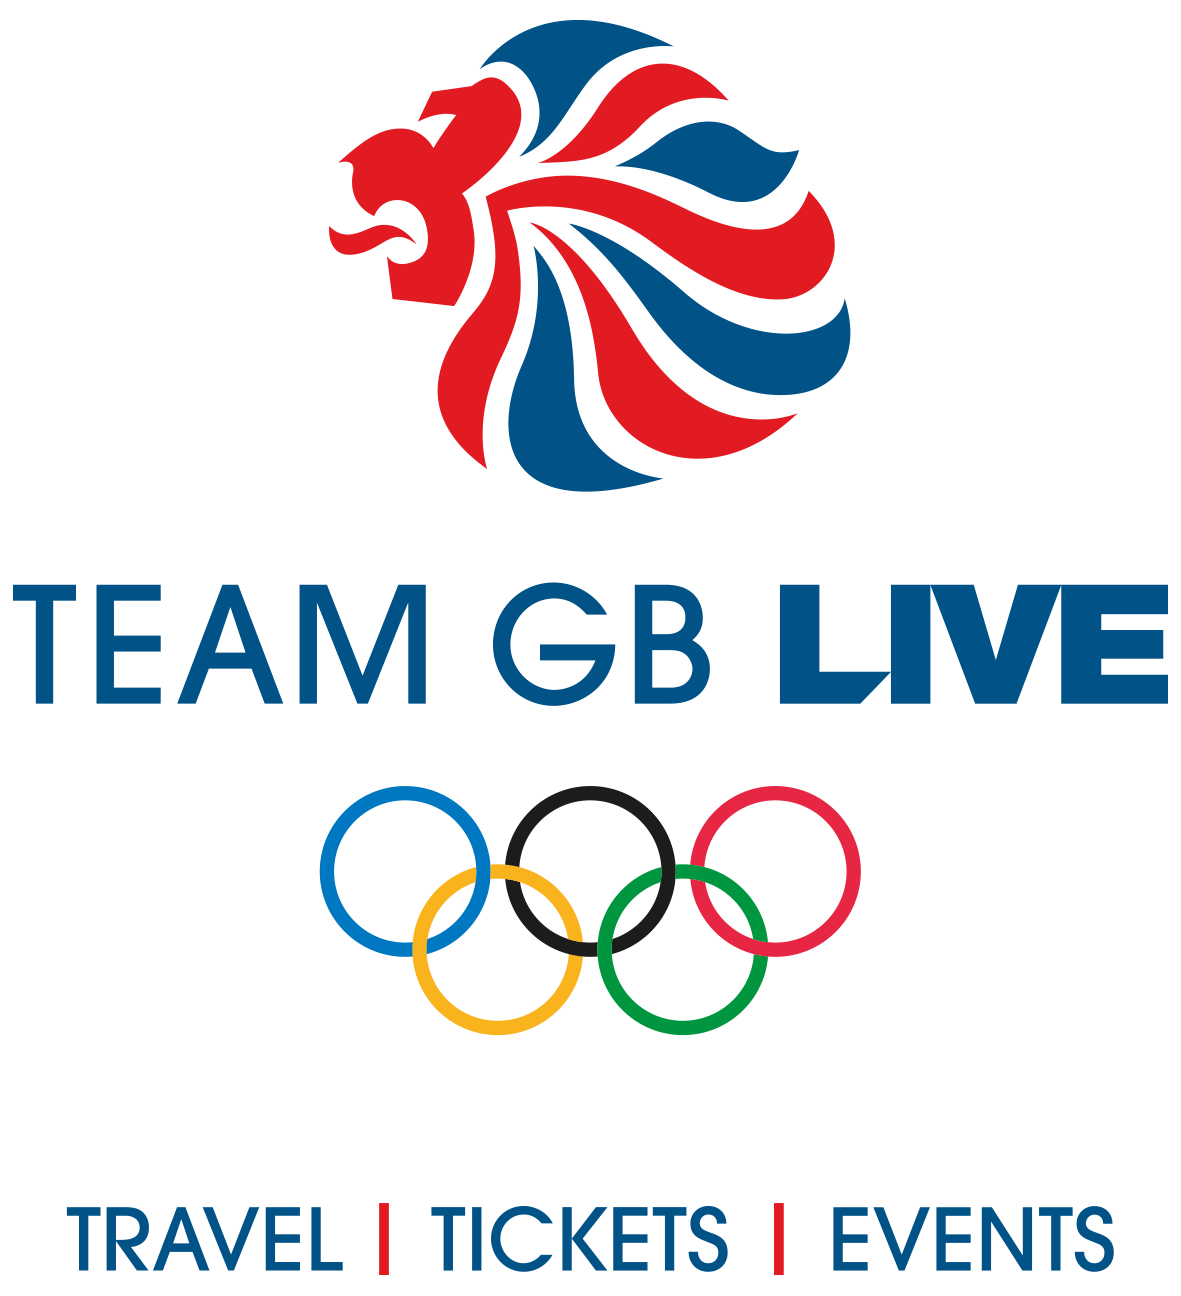 Team GB Live has offered refunds or rollovers to customers in response to the virus ©Team GB Live